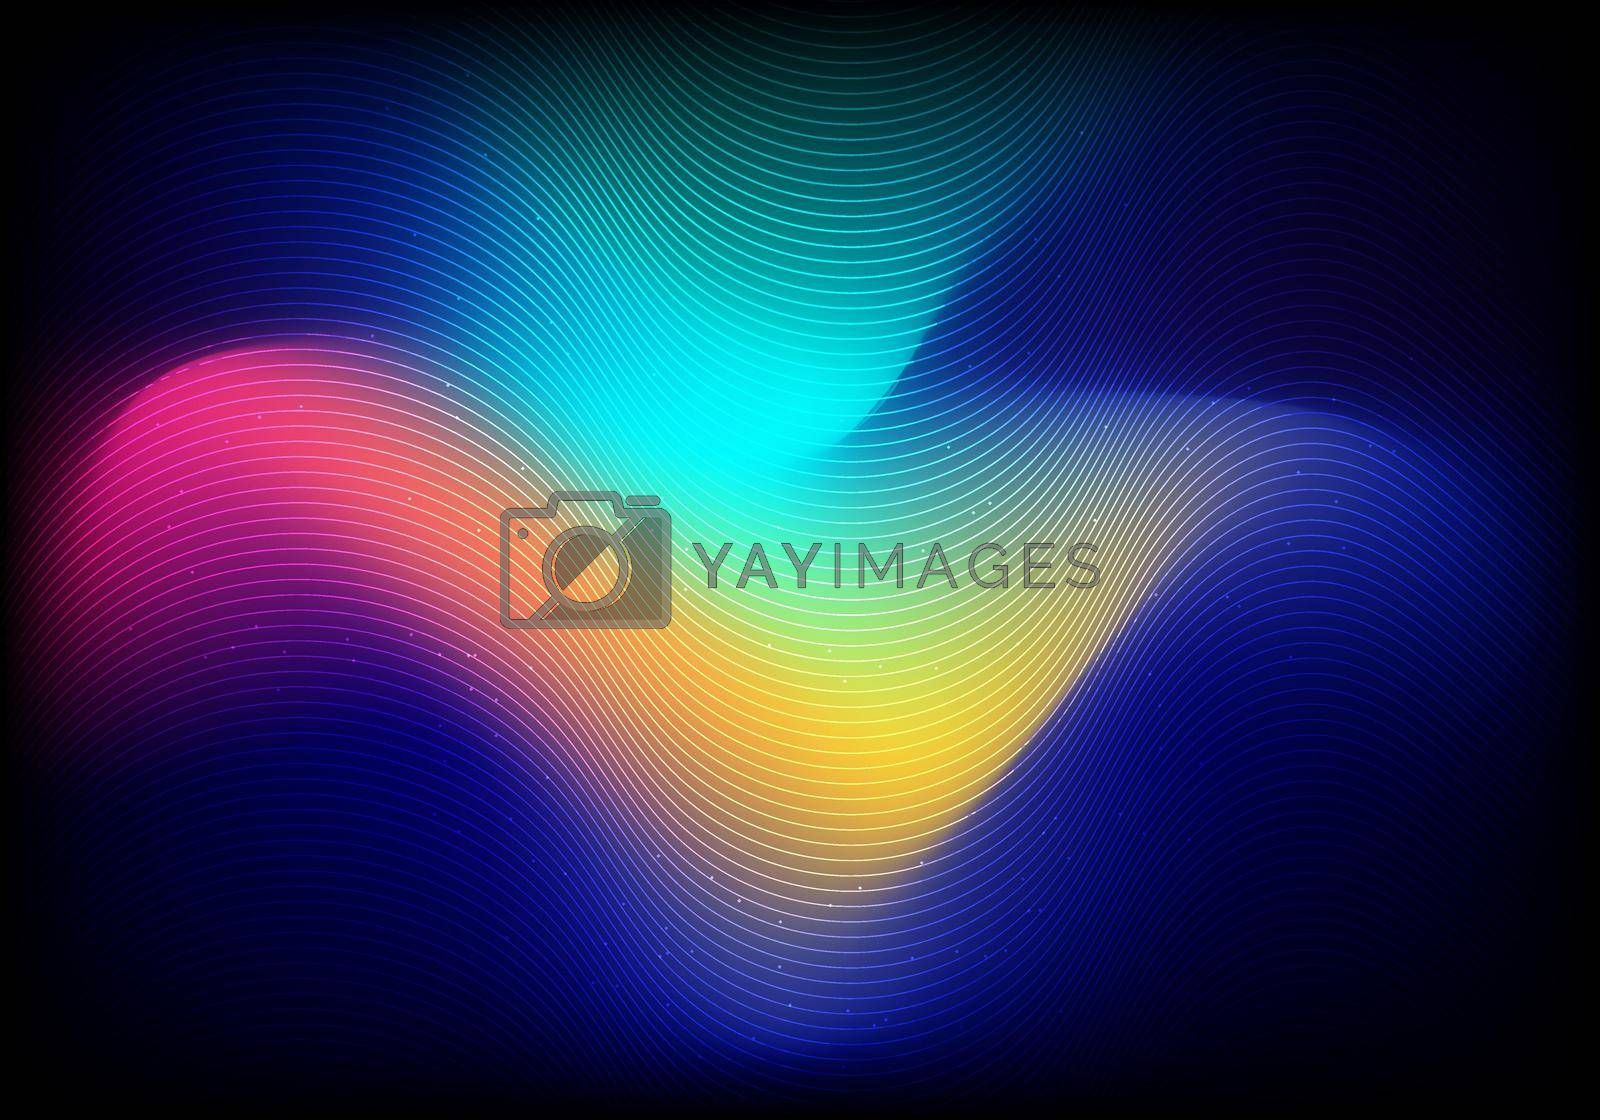 Abstract trendy minimal style fluid blurred vibrant gradient color background. You can use for poster, cover brochure, placard, banner web, music festival, etc. Vector illustration